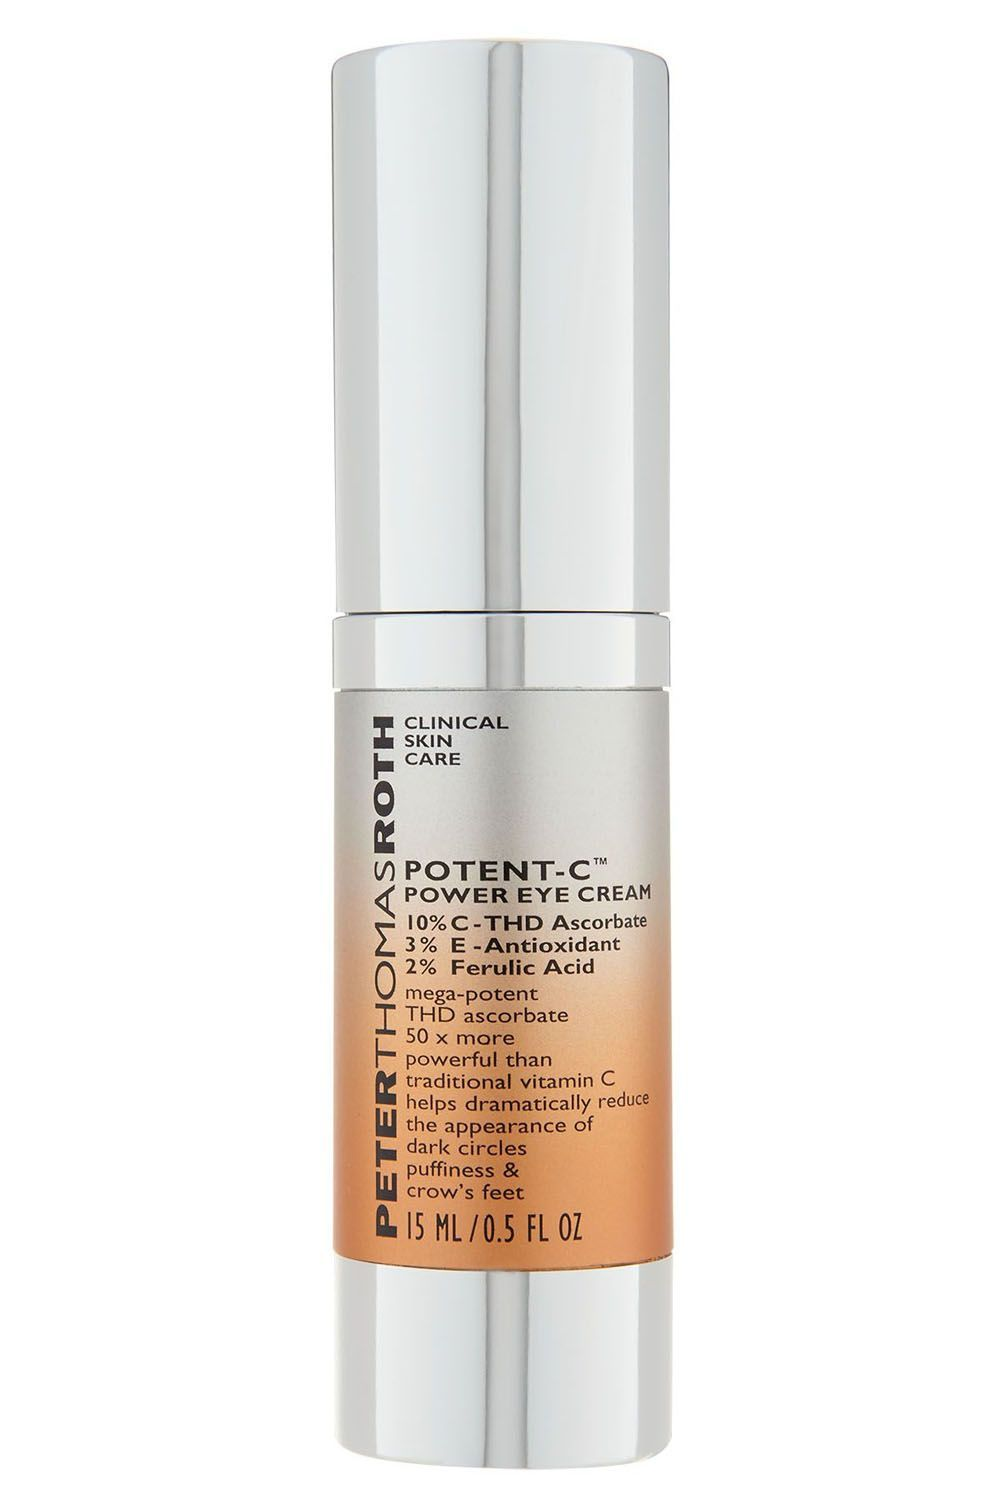 Peter Thomas Roth Potent-C Vitamin C Power Eye Cream